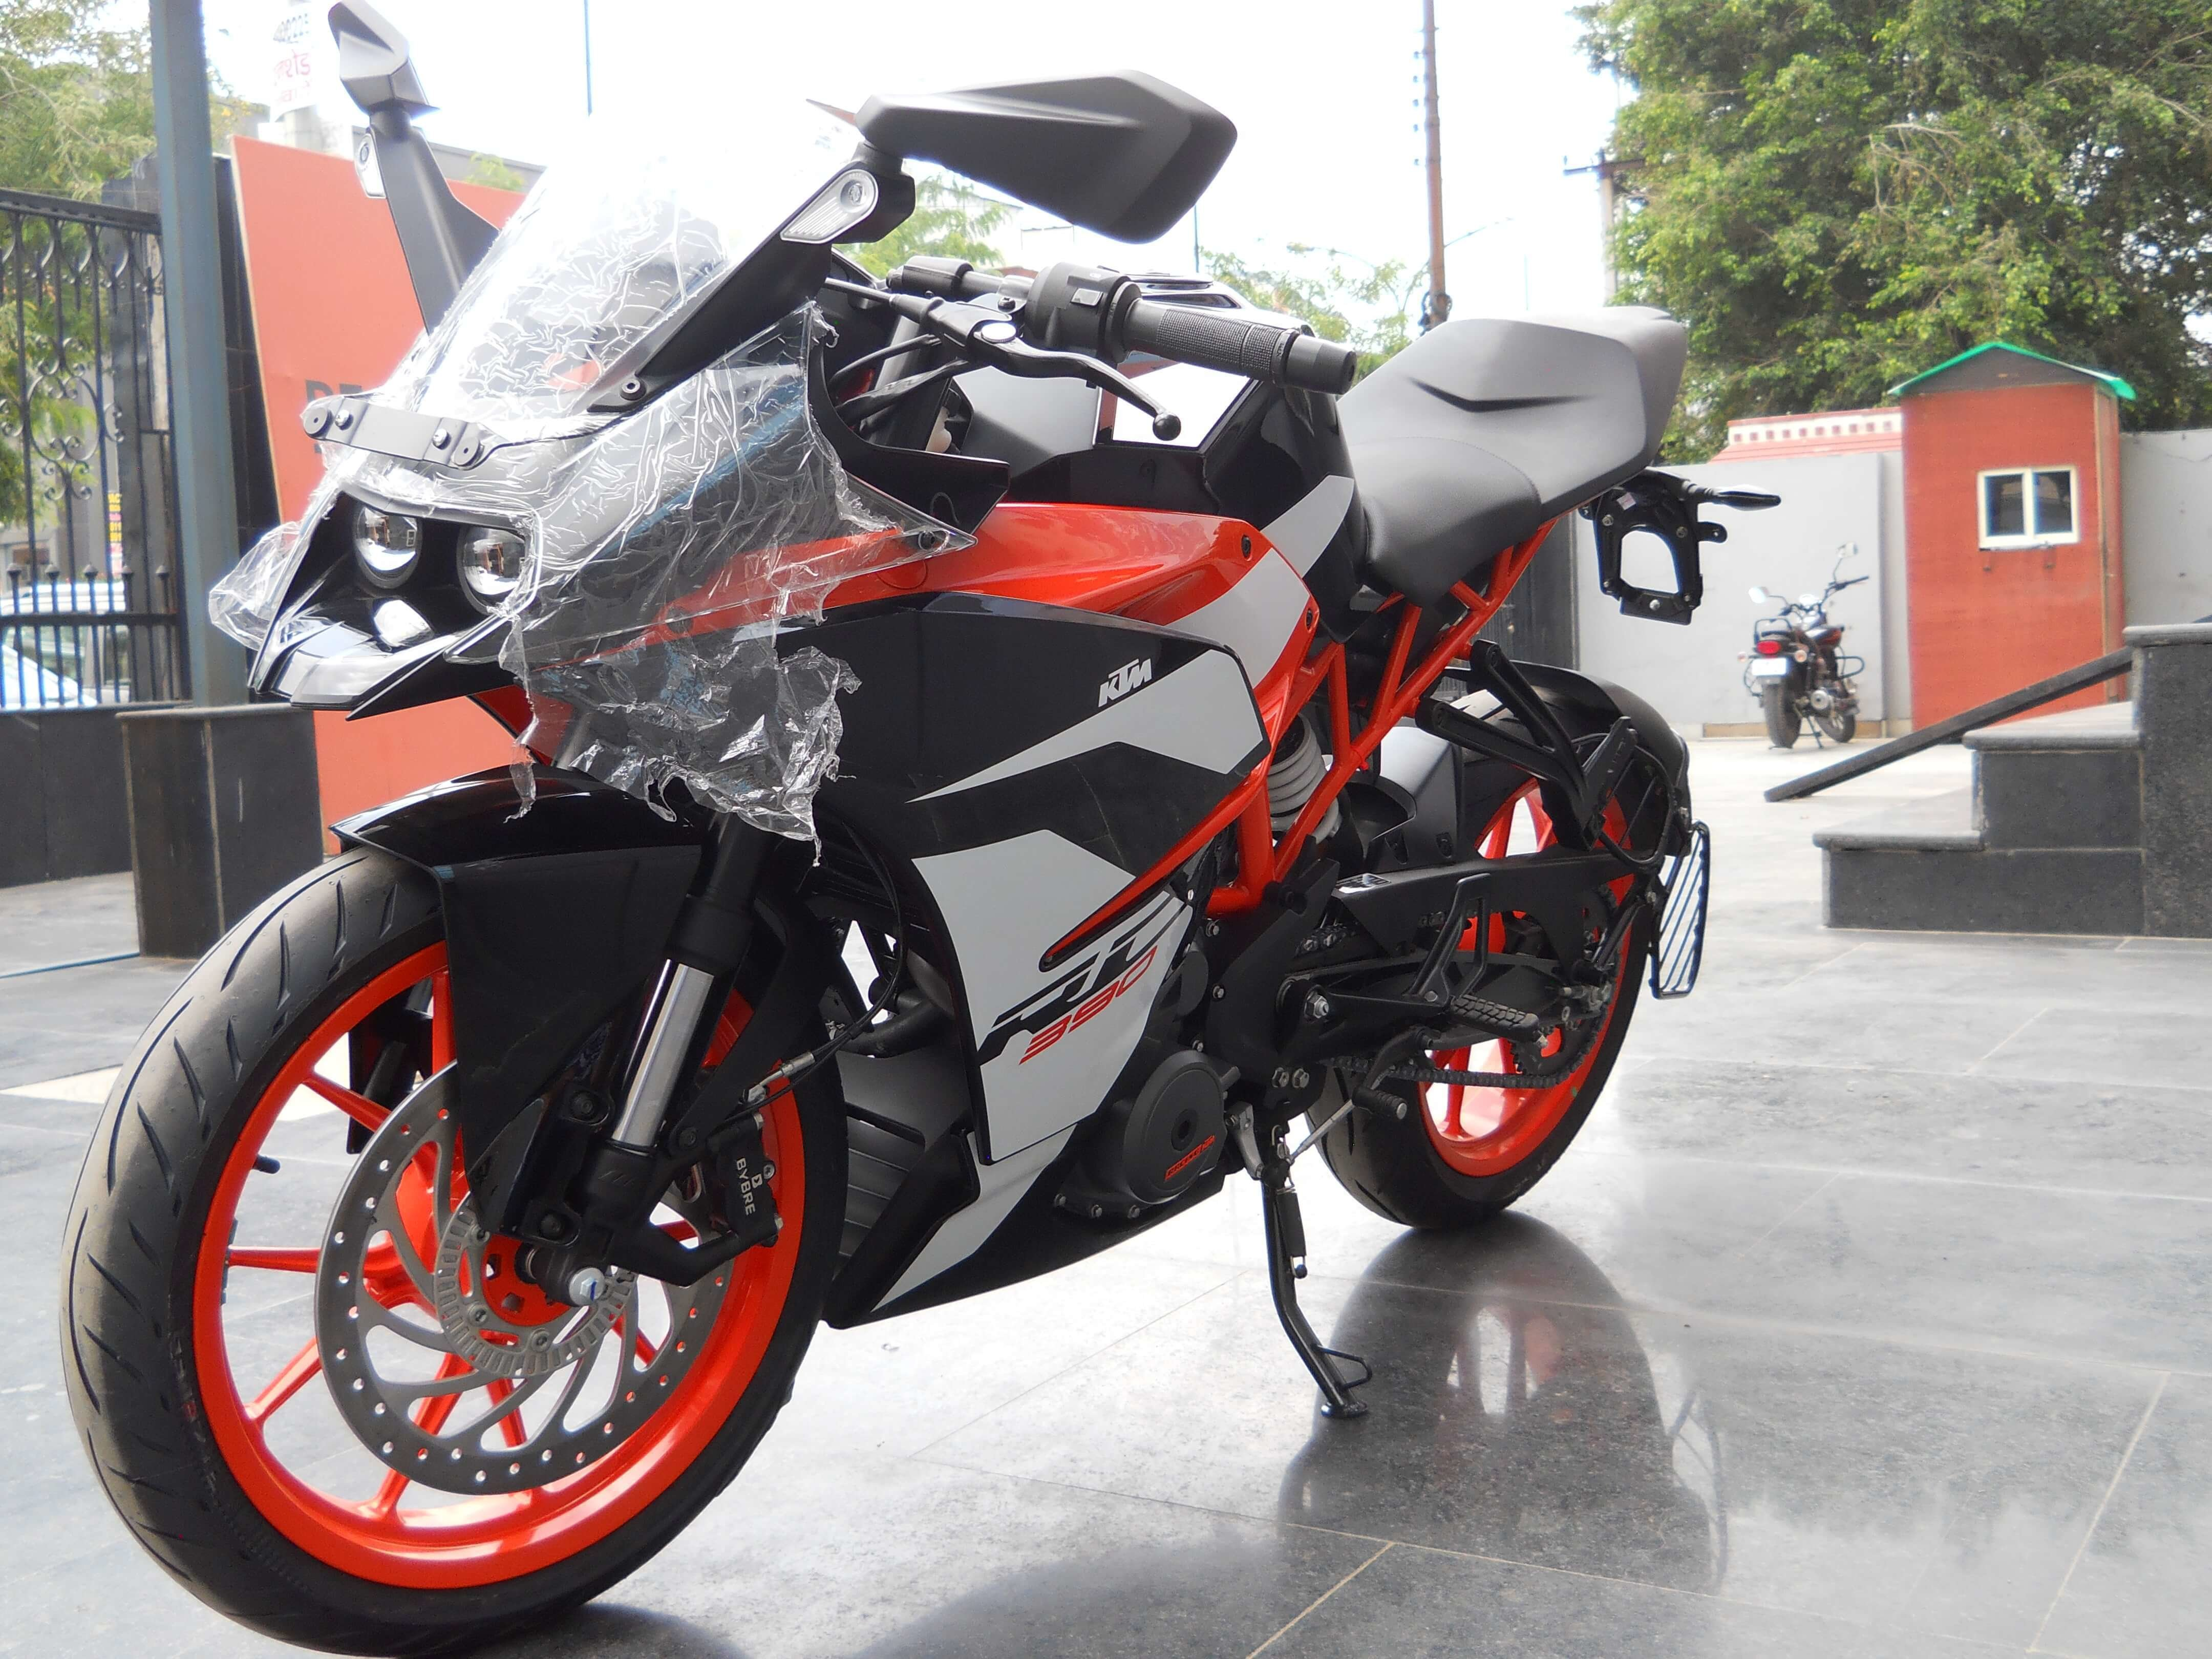 New 2017 Ktm Rc 390 Test Drive Review – Super Sport Bike Of On This Month